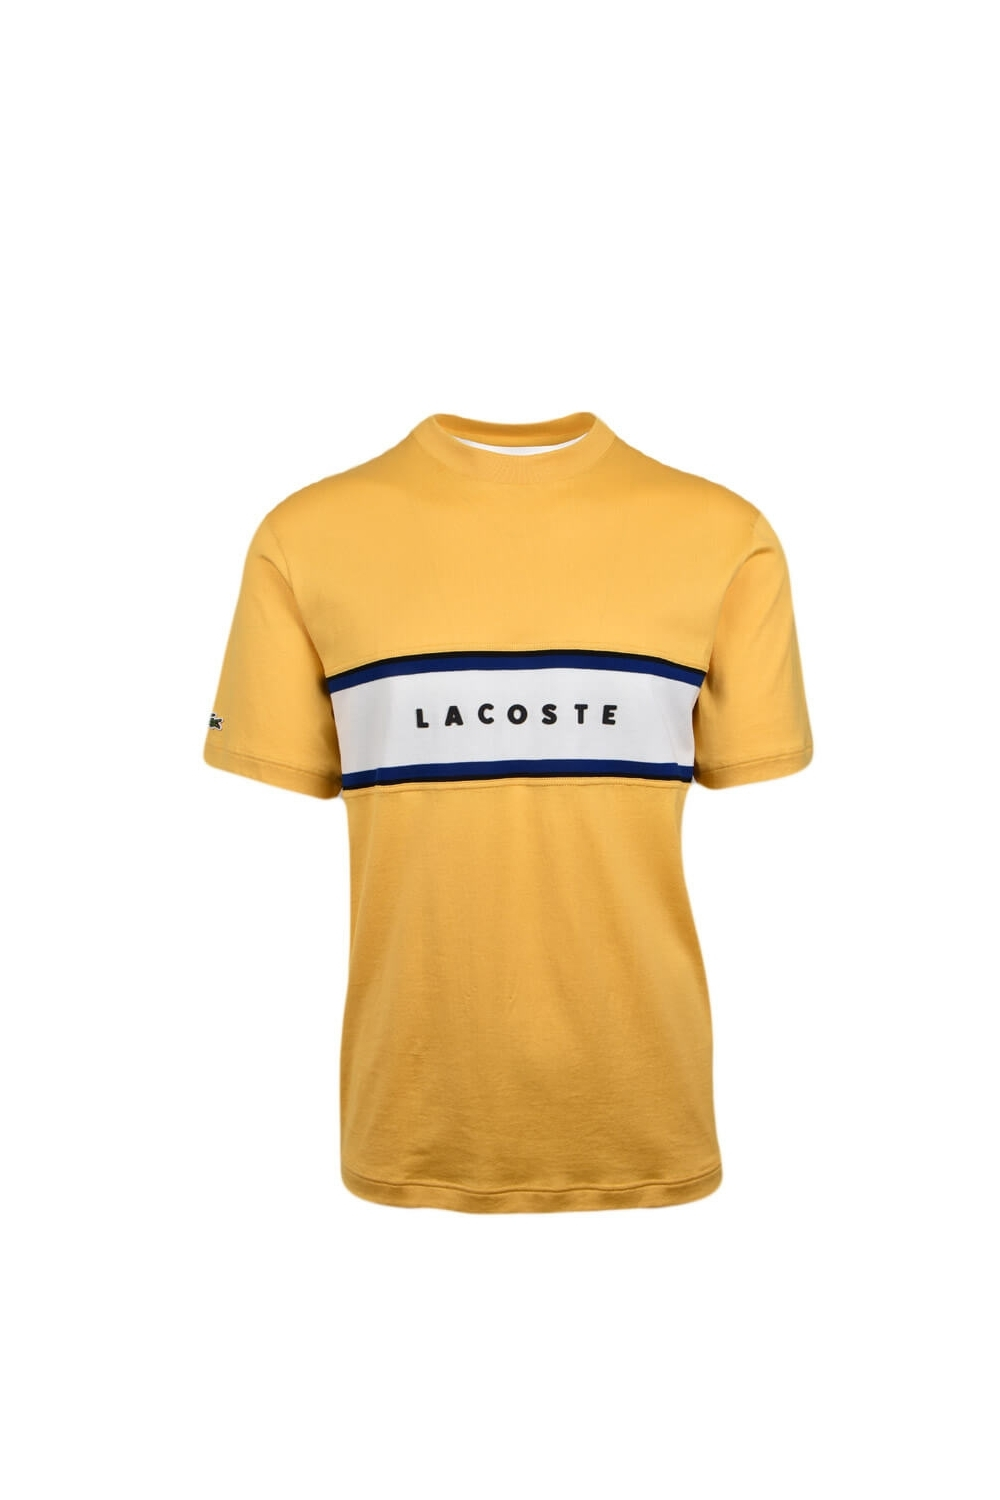 9fbe7441ef65 Lacoste Crew Neck T Shirt Lettered Pique Panel Cotton Yellow Navy Cream